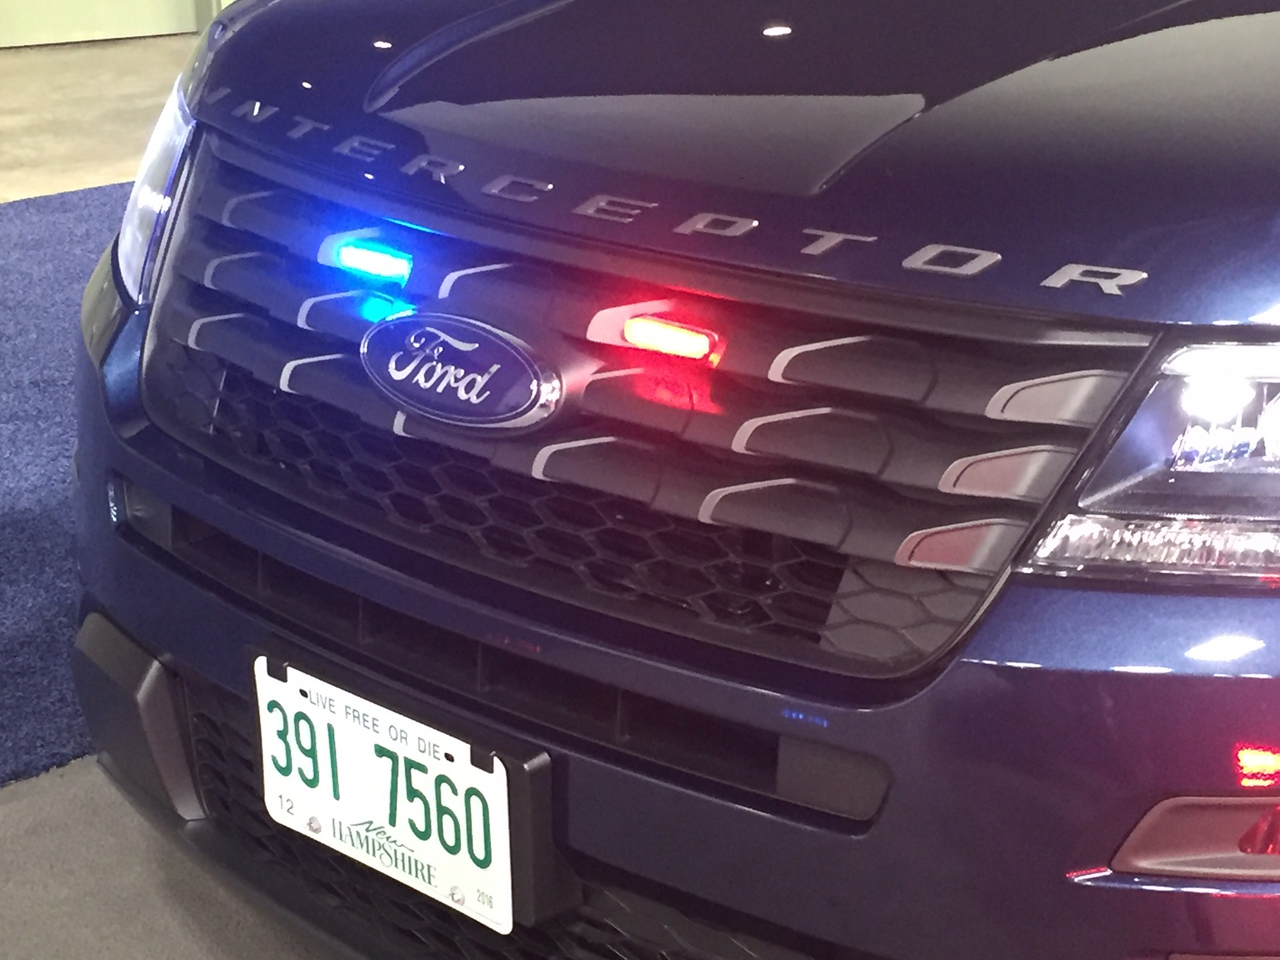 Whelen Micron LED Stud Mount Light Head MCRNT, fits perfect in the Ford Police Interceptor Utility SUV (Explorer) Grille, 2013-2019